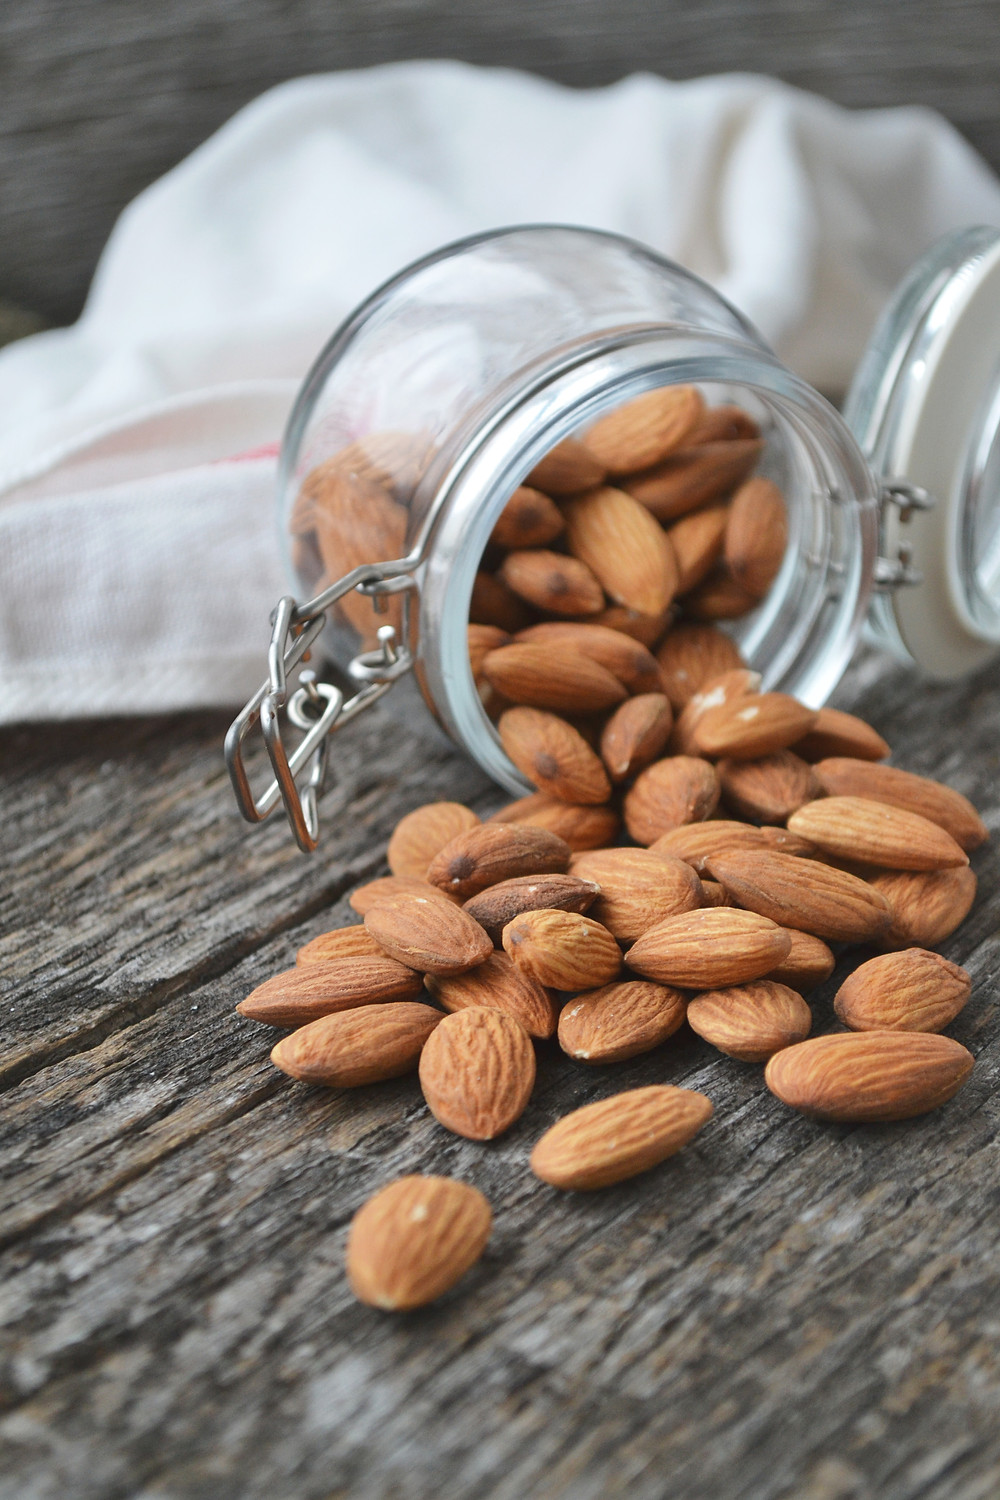 Nuts are a great source of fibre and healthy fats